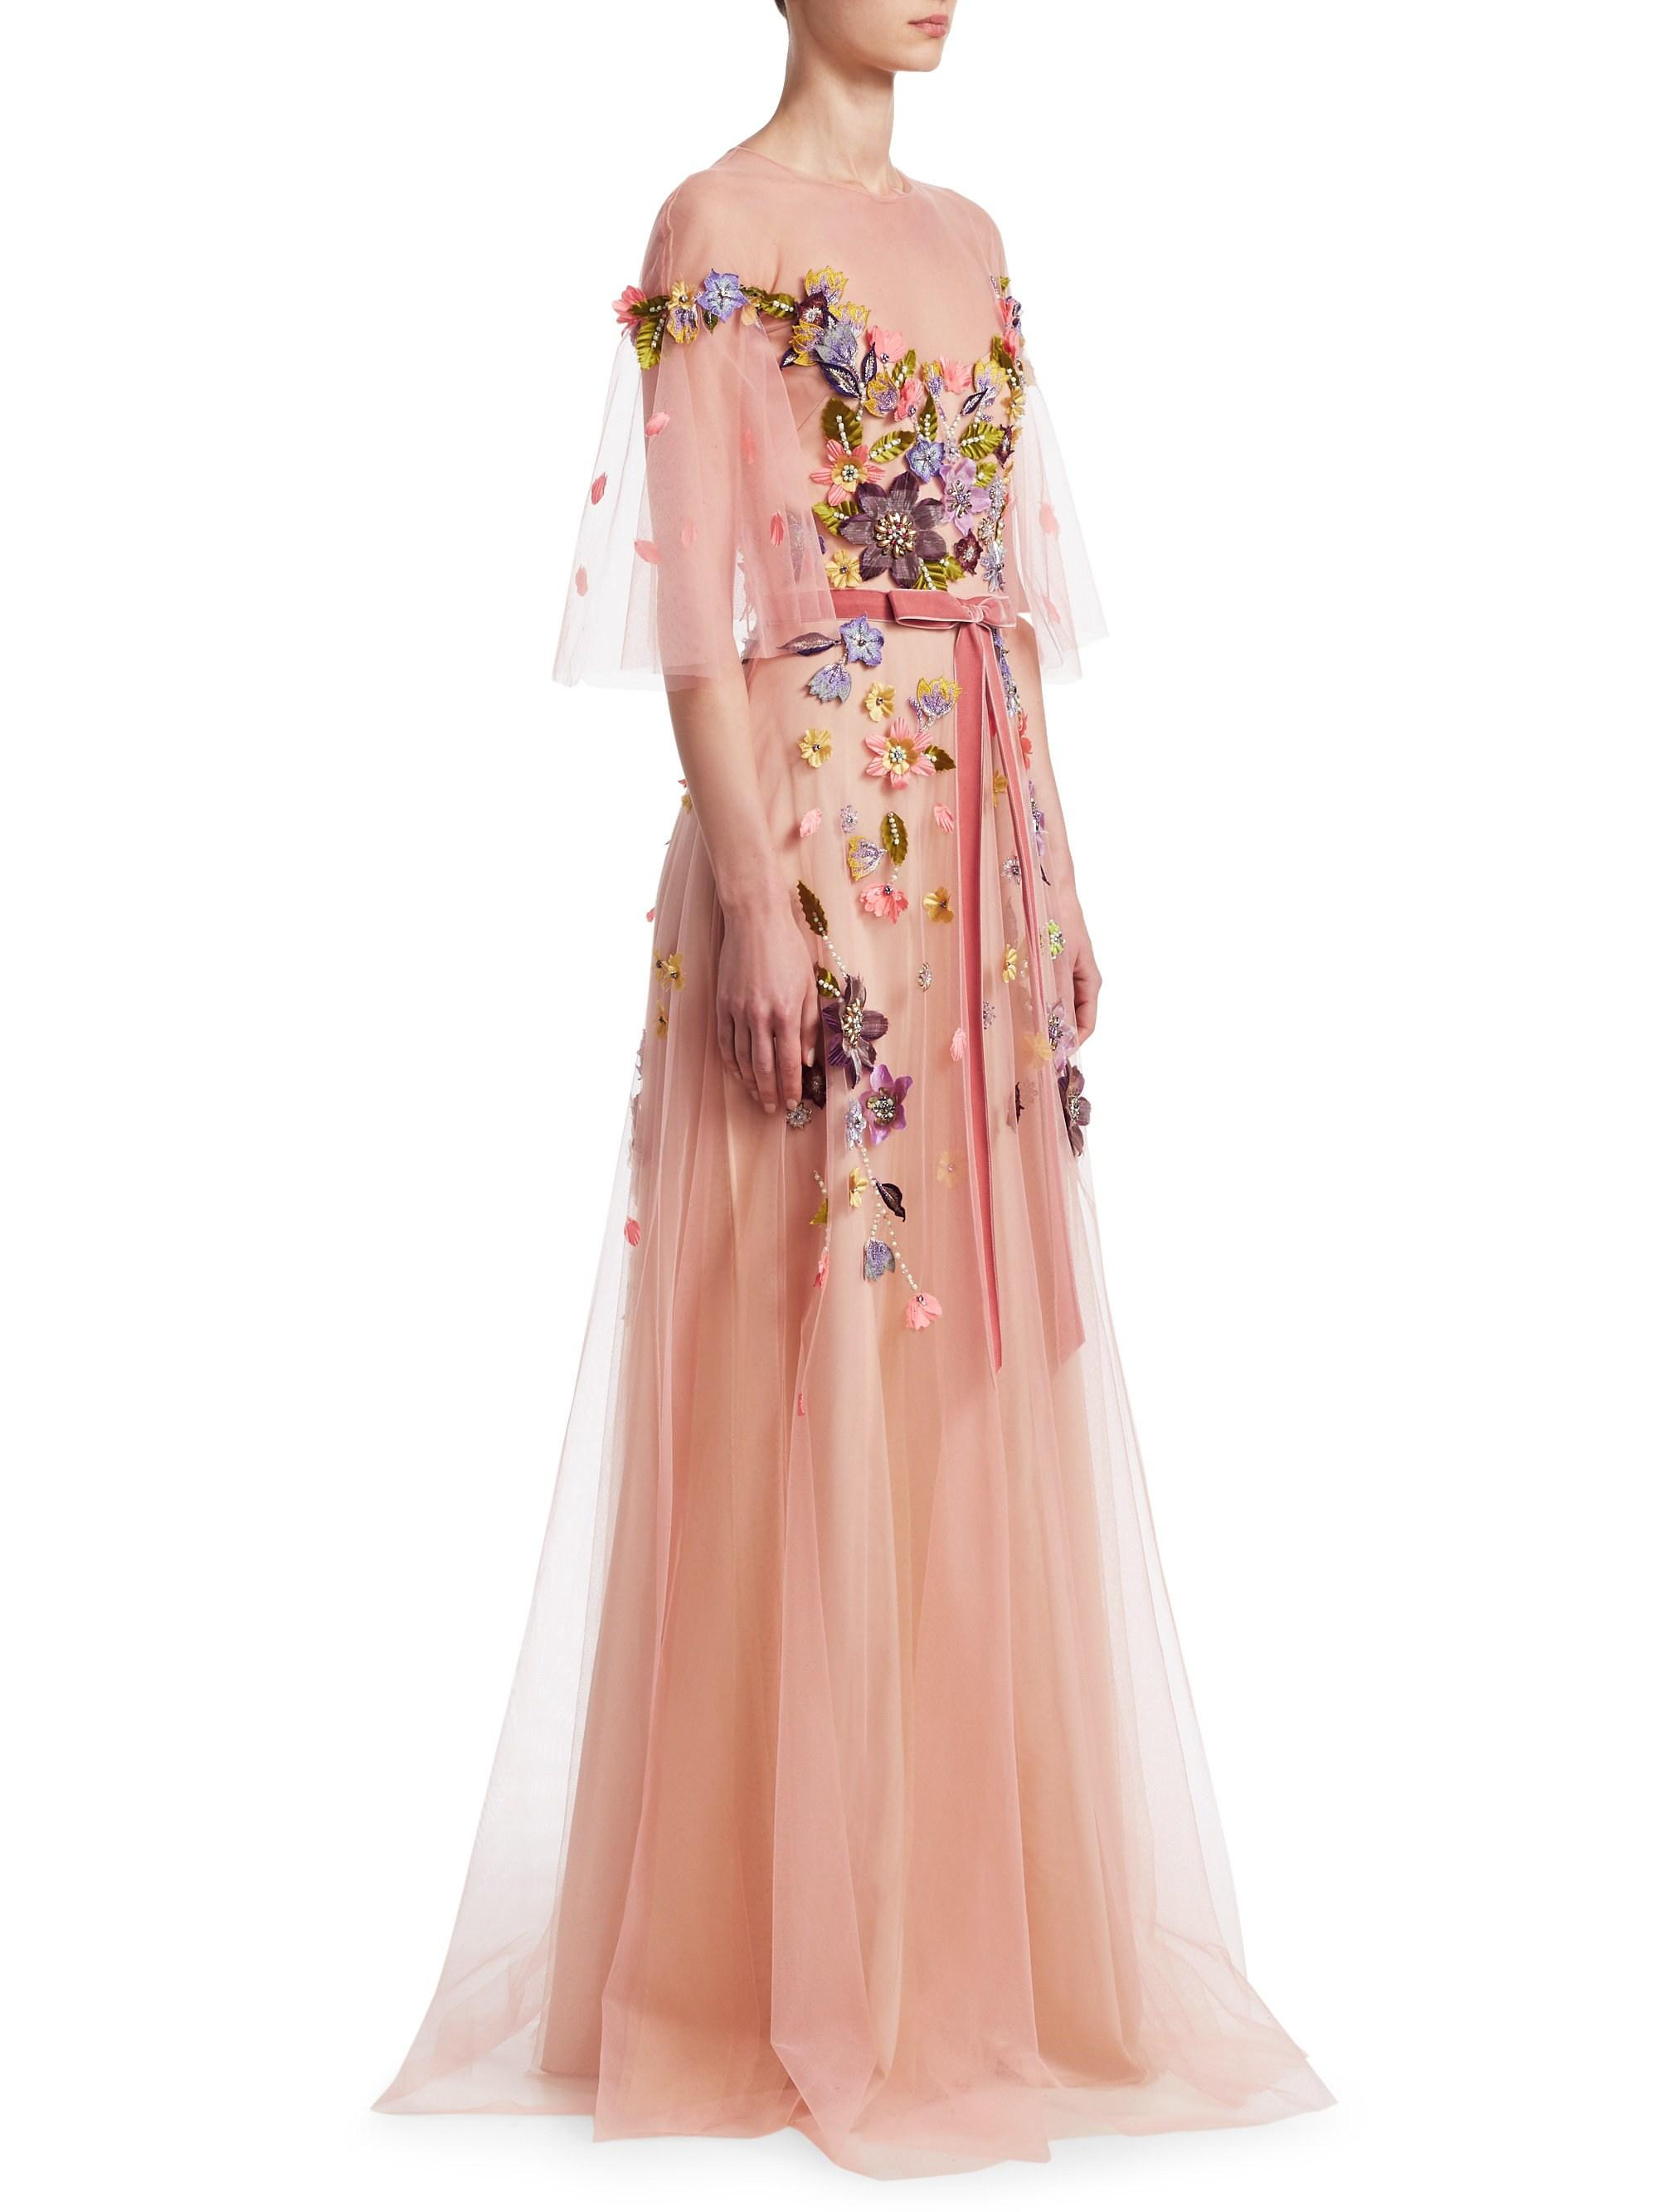 967824656e74 Marchesa notte Floral Belted Gown in Pink - Lyst